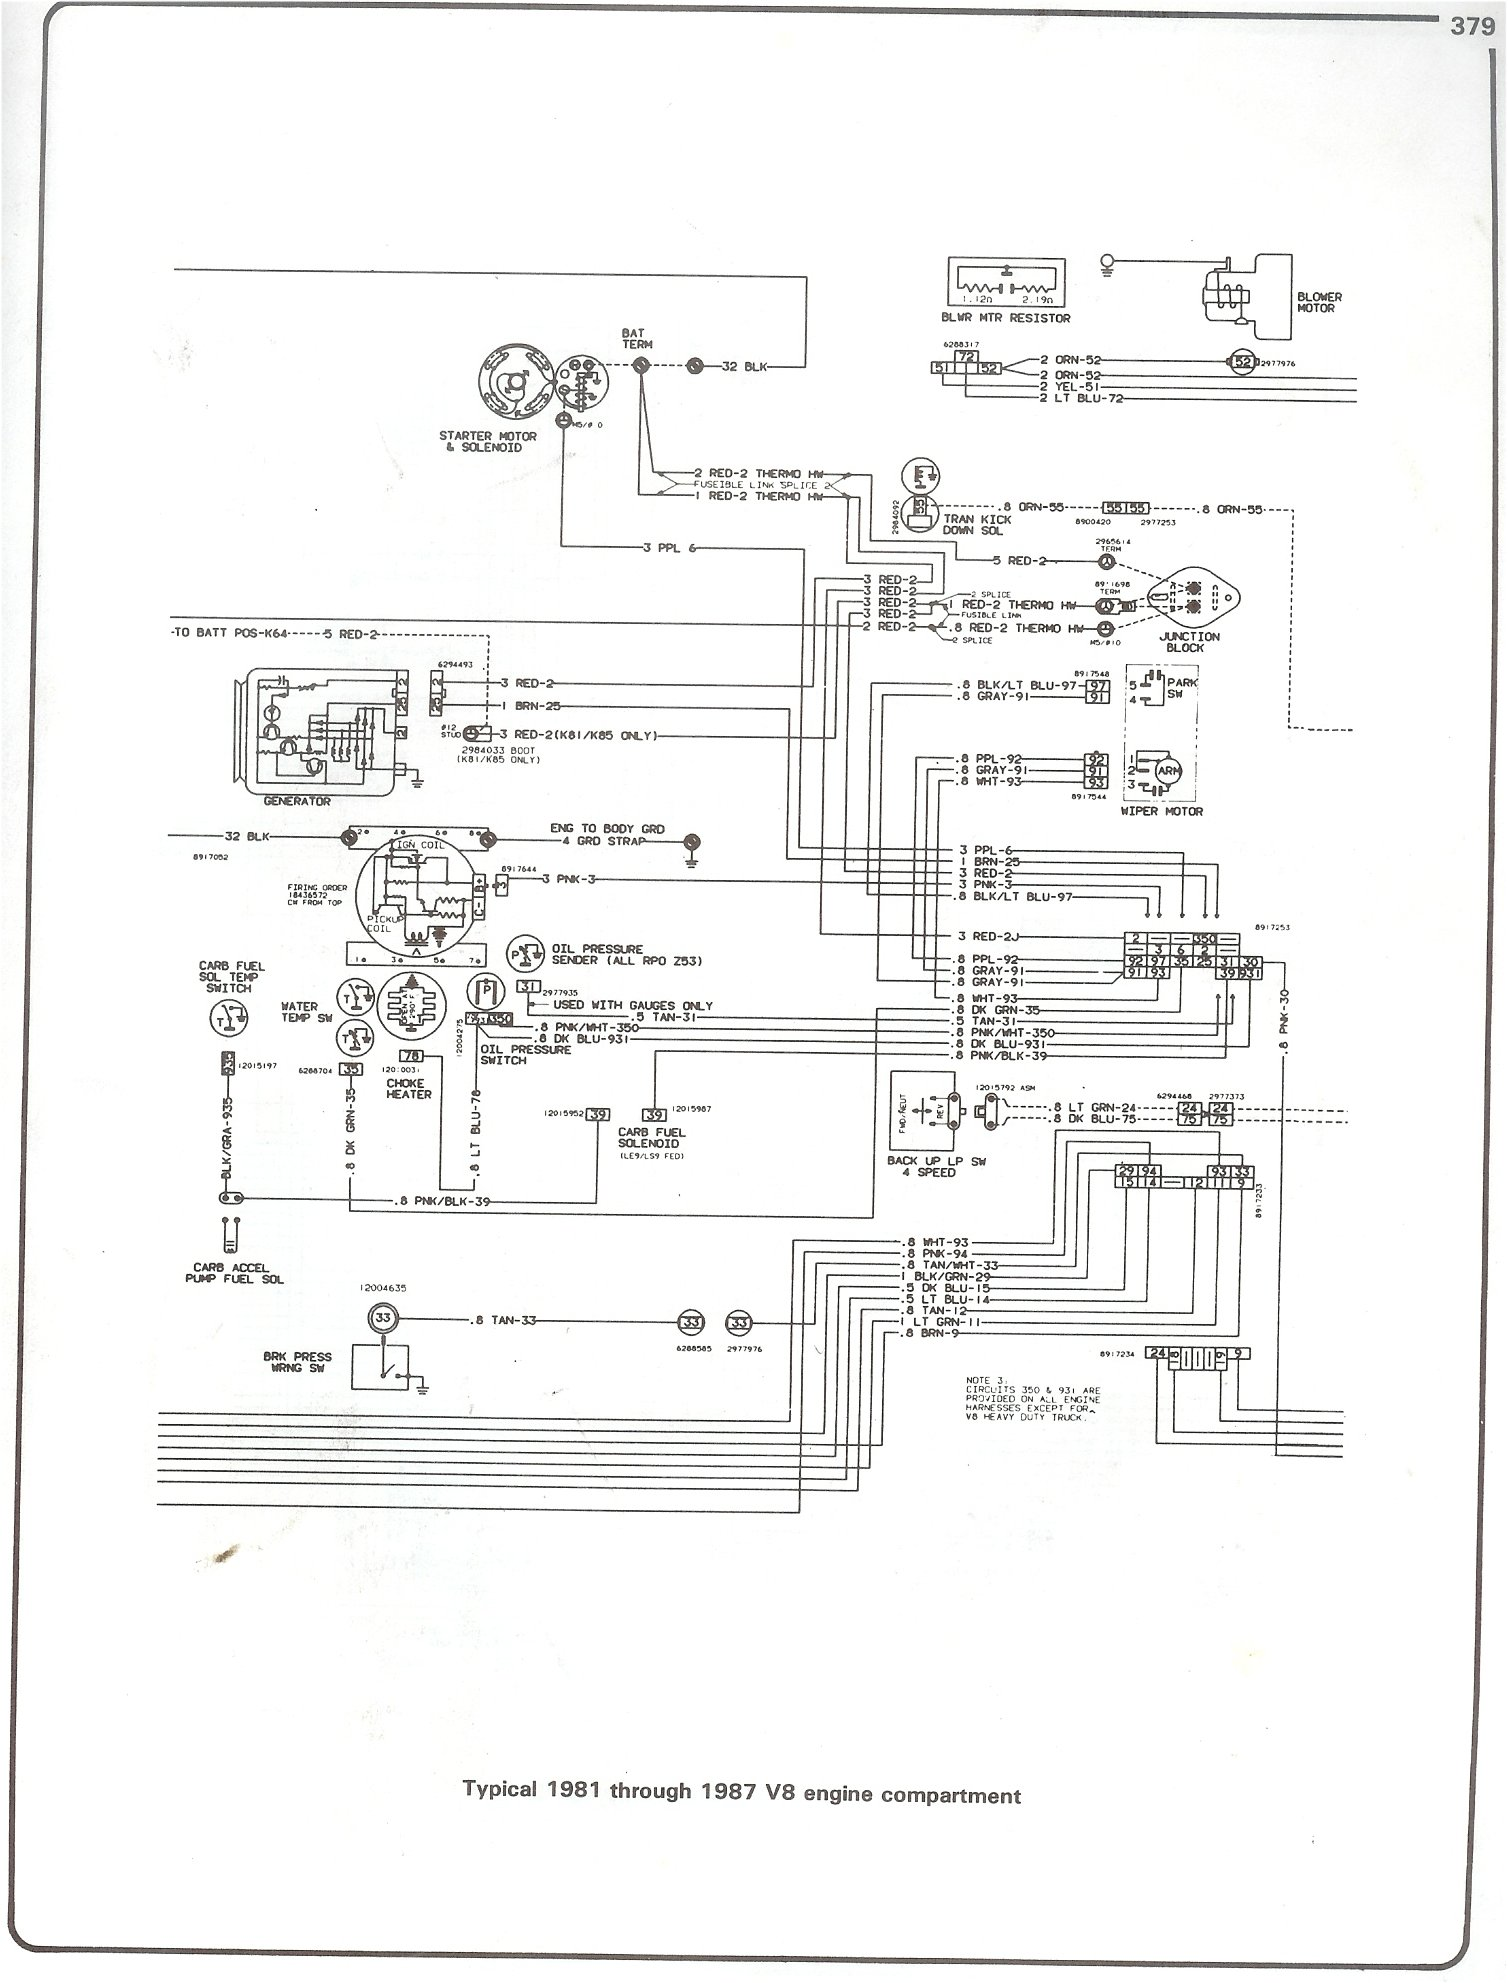 81 87_V8_engine chevy wiring diagrams chevy radio wiring \u2022 wiring diagrams j 1978 Chevy C10 Wiring-Diagram at panicattacktreatment.co